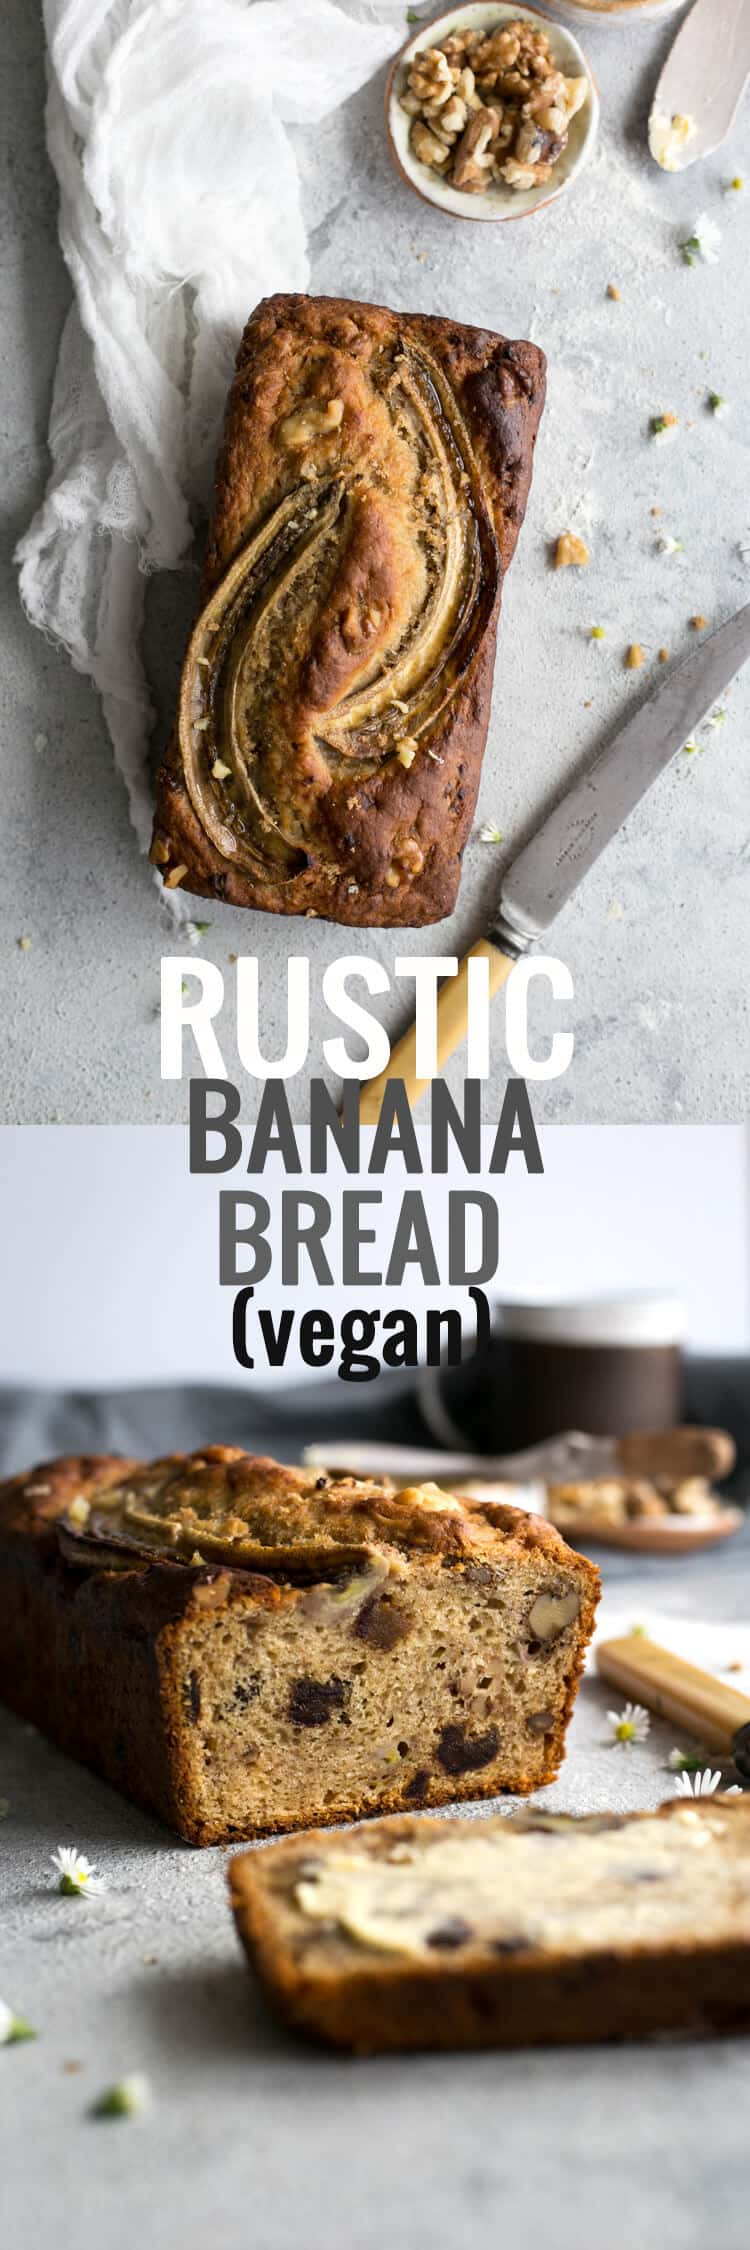 Delicious, rustic banana bread recipe, 100% vegan! | via @annabanana.co